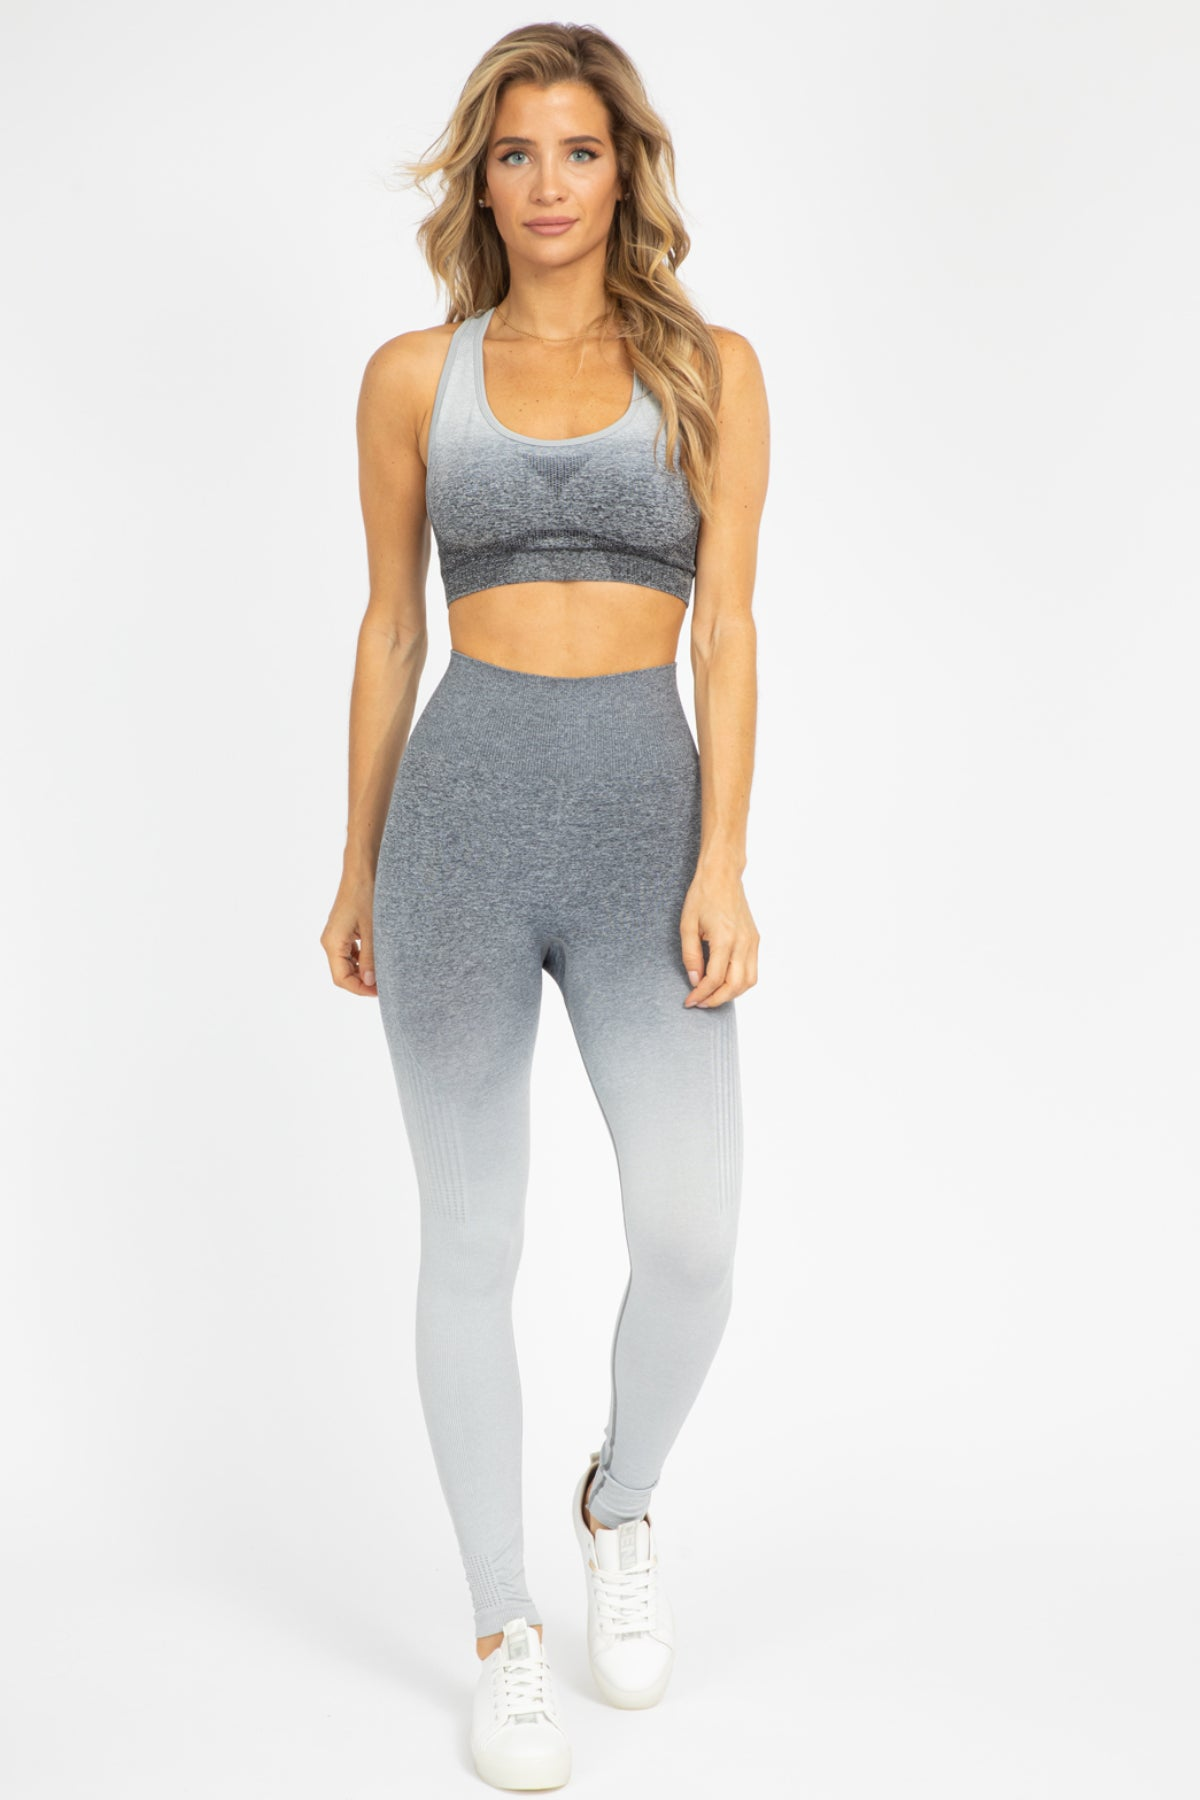 GREY OMBRE SPORTS BRA